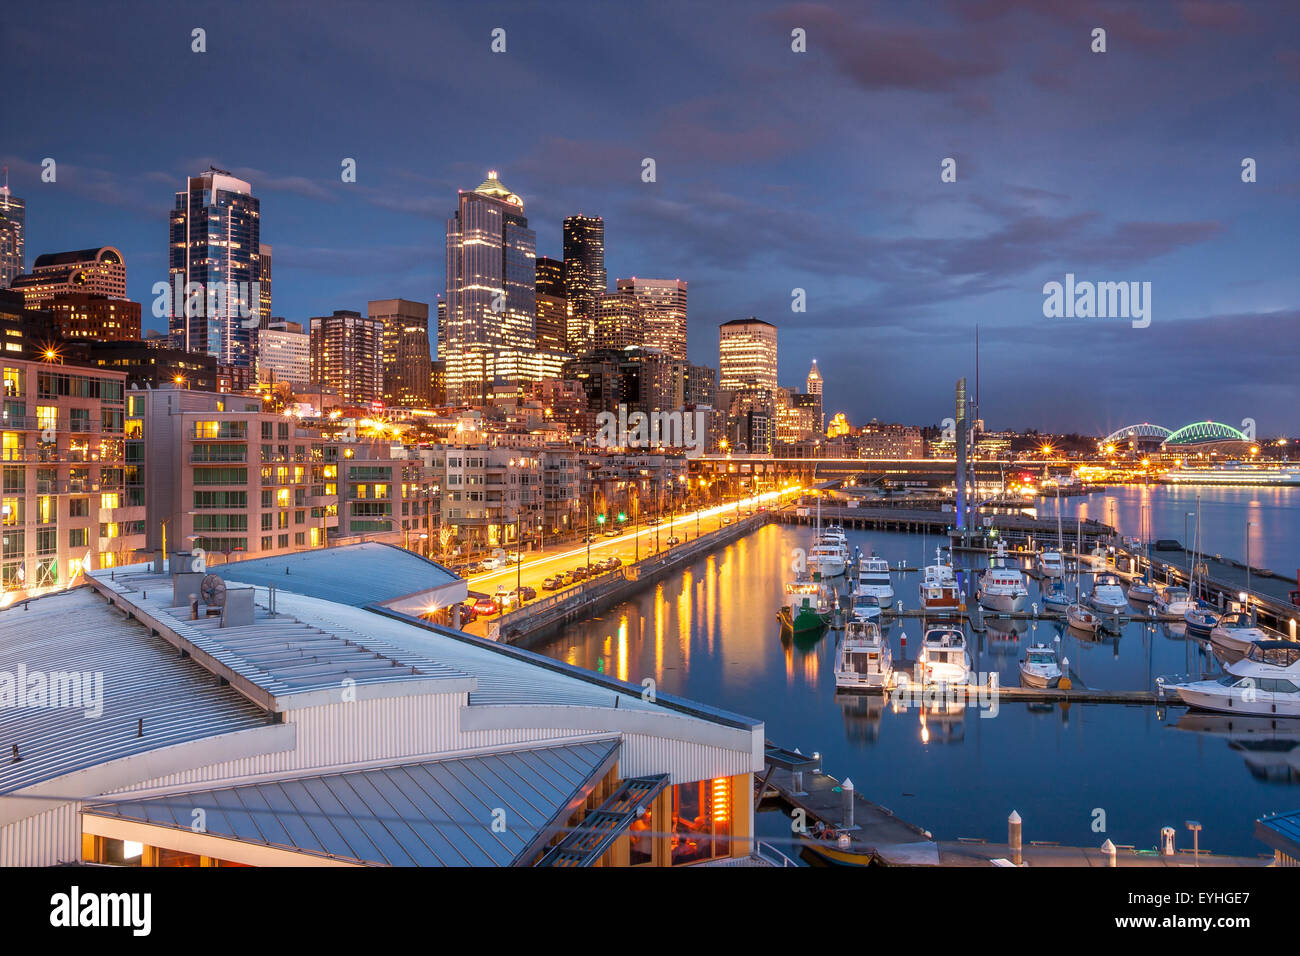 Seattle Waterfront At Dusk with the Marina in the foreground from The Bell Street Terminal, Seattle , WA , USA - Stock Image